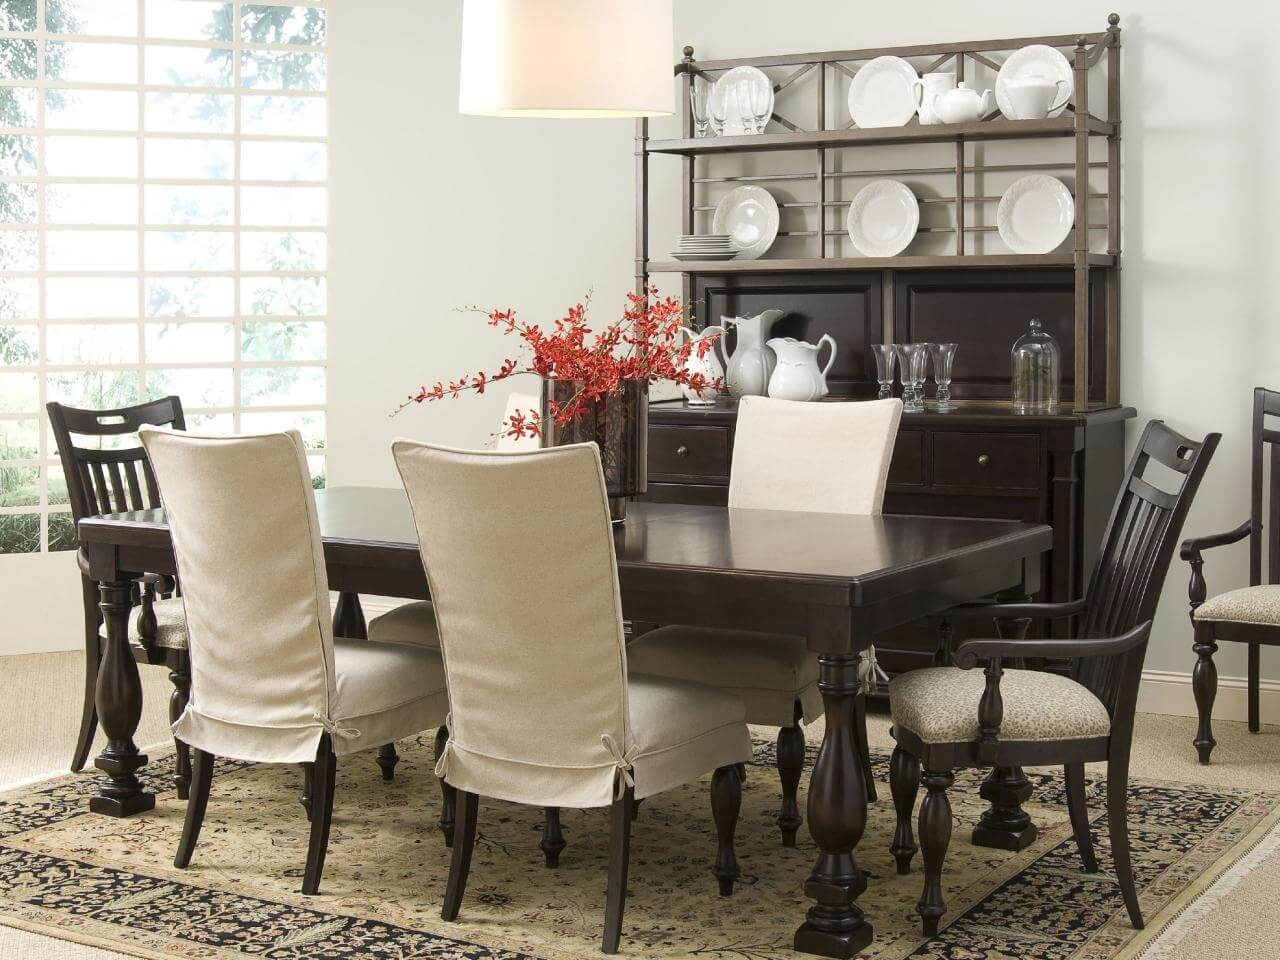 These Great Dining Rooms Have Upholstered Chairs For Extra Elegance With A  Multi Floral Carpet And